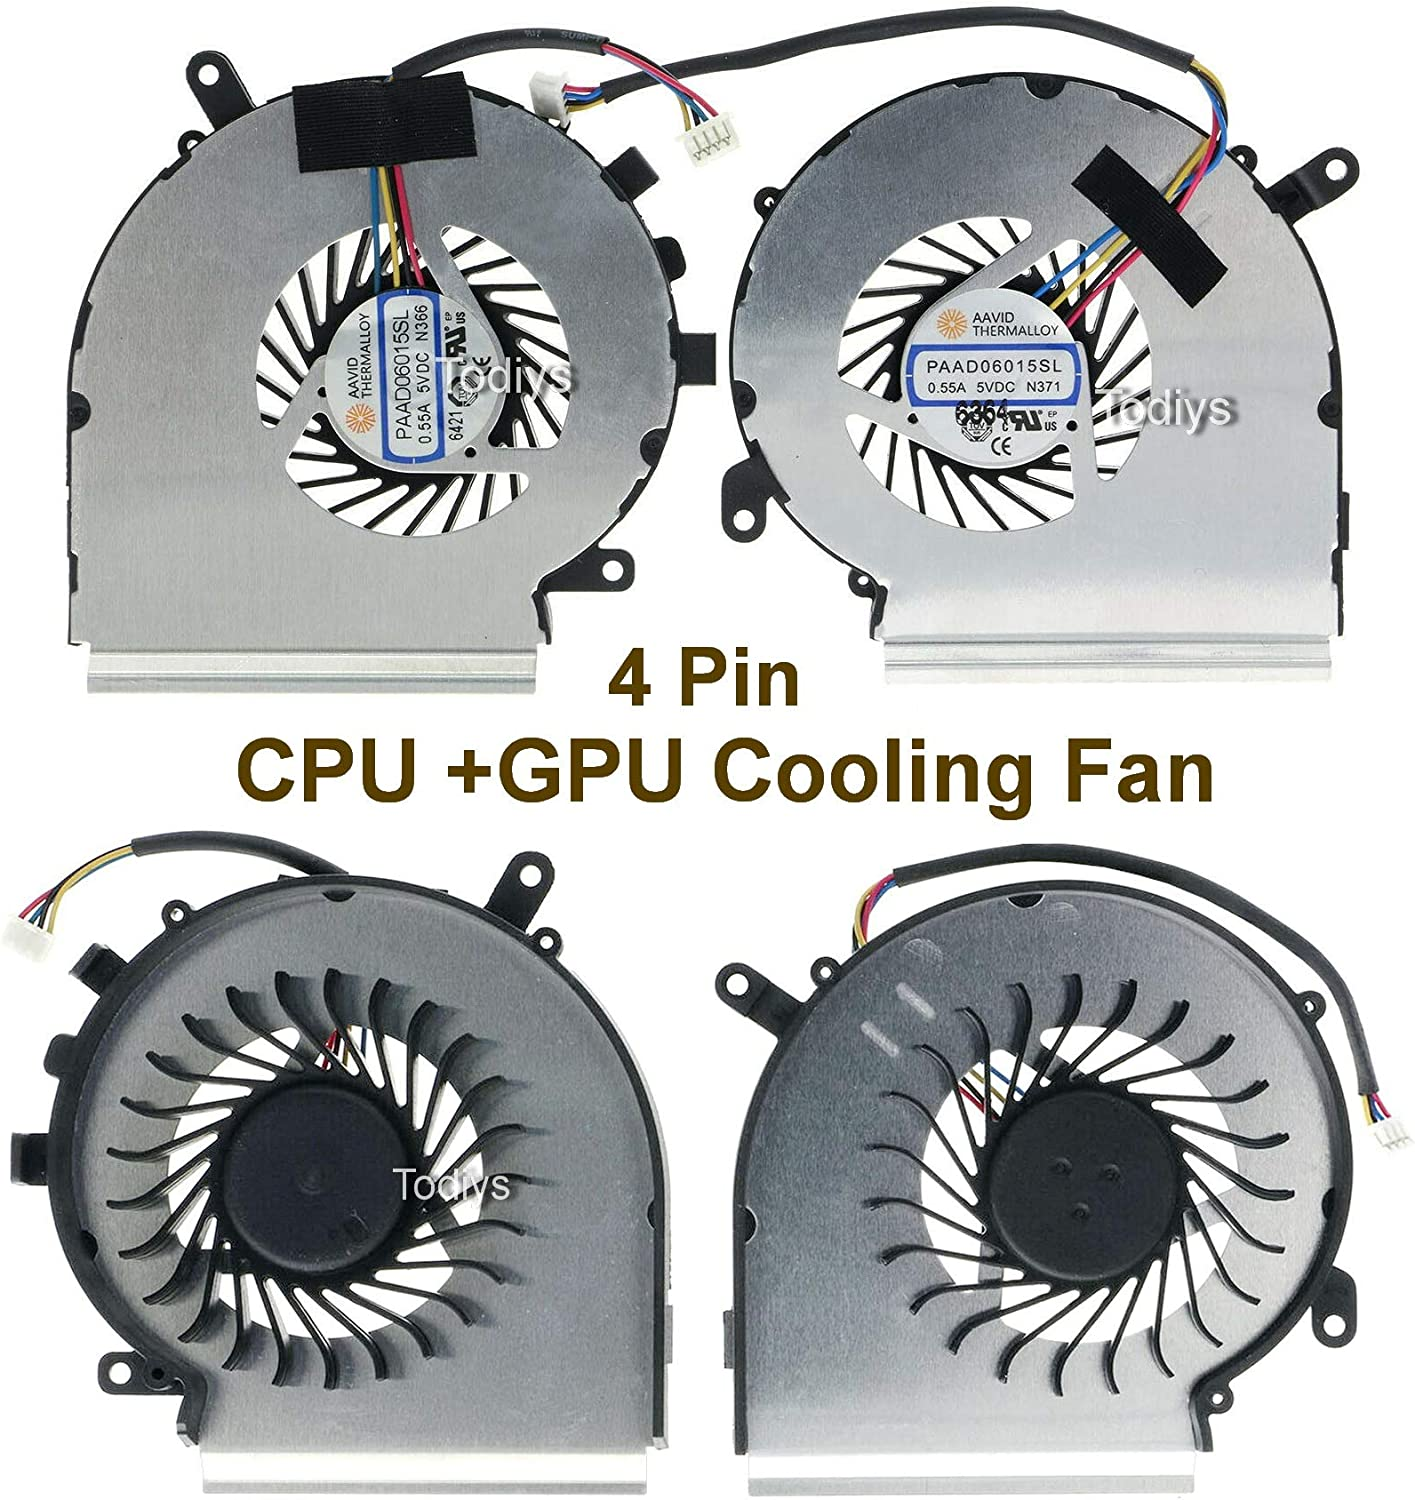 Todiys CPU + GPU Cooling Fan 4-Pin for MSI GE62VR 6QF 6RE 6RF 7RD 7RE 7RF Apache Pro Series GE62VR 6QF-233US 6RF-004CA 6RF-027UK 6RF-086US 7RF-290DE 7RF-436AU 7RF-866AU MS-16JB PAAD06015SL N366 N371